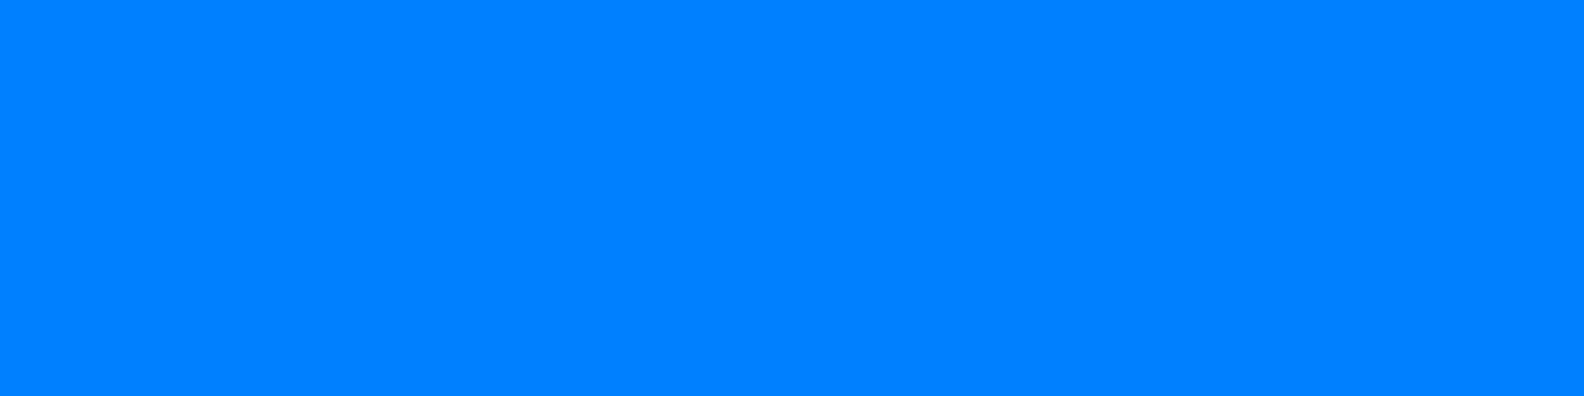 1584x396 Azure Solid Color Background